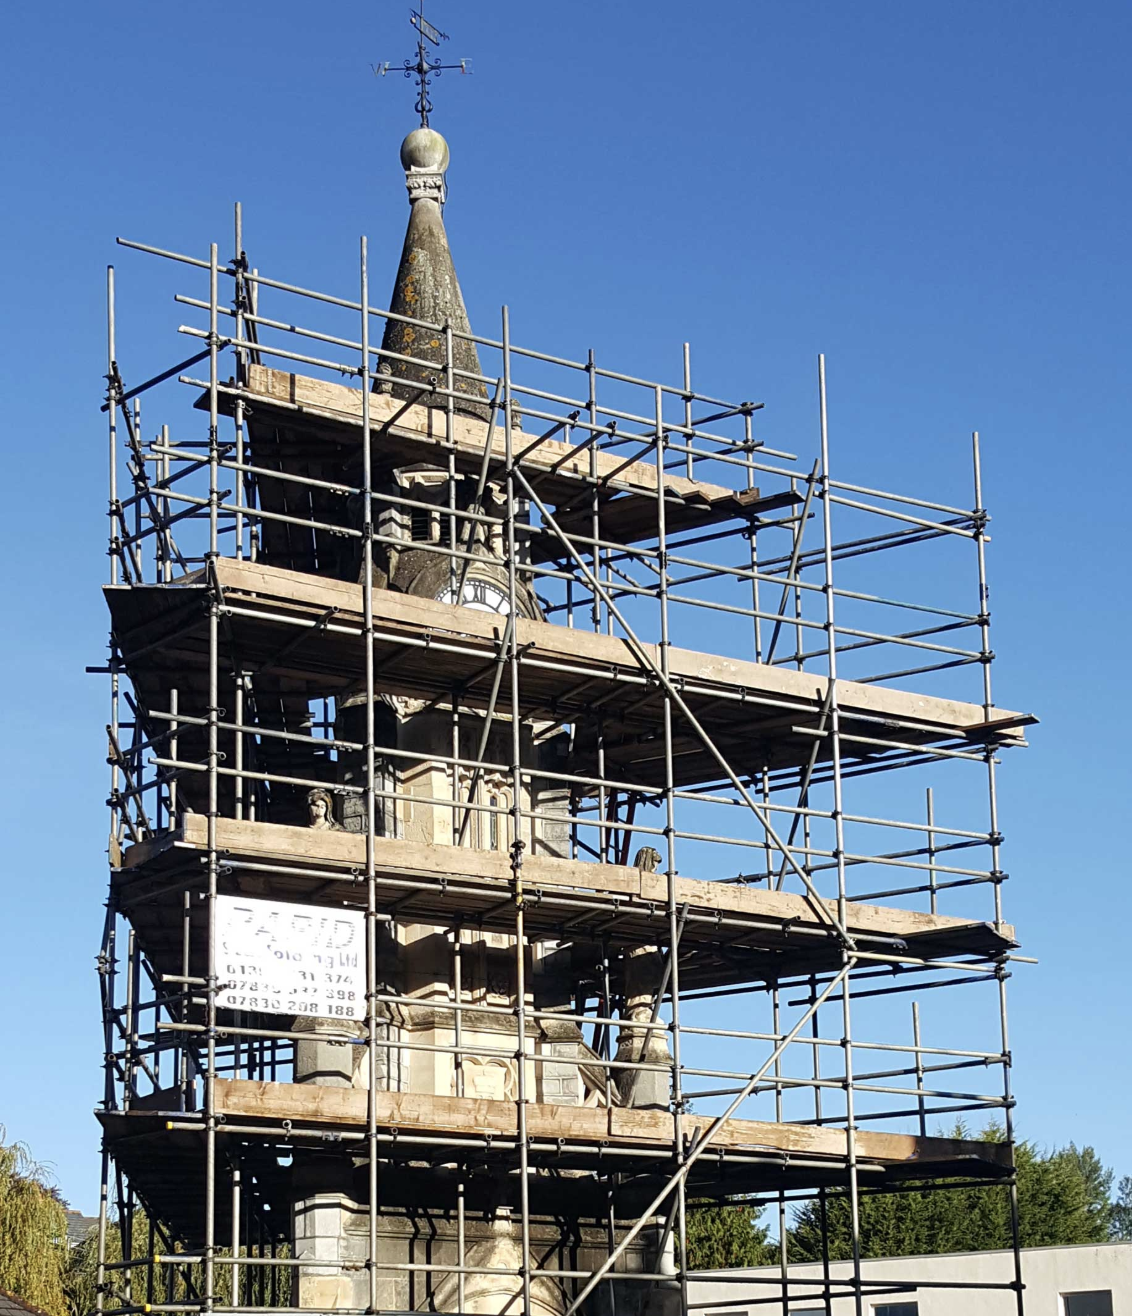 Scaffolding Services Exeter, Tiverton and Devon - Rapid Scaffold Ltd